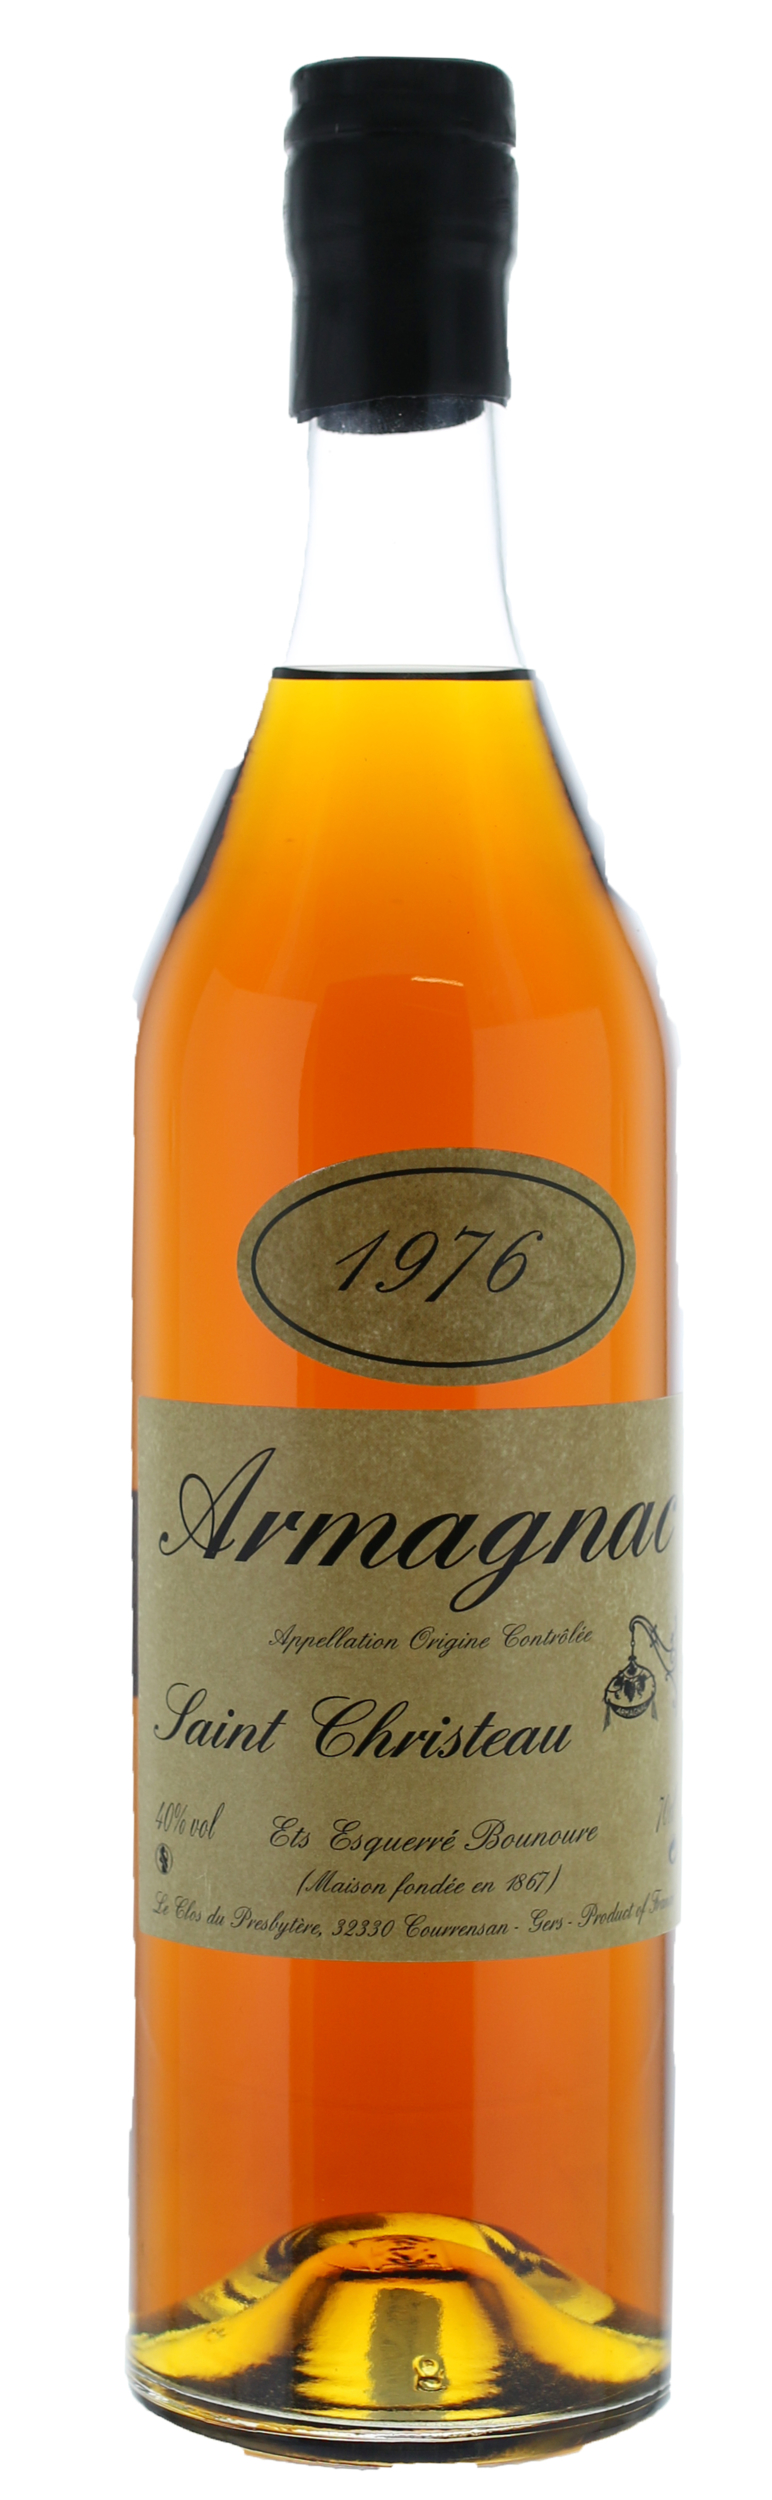 ARMAGNAC - 1976 - Saint-Christeau - 41° - G. Miclo